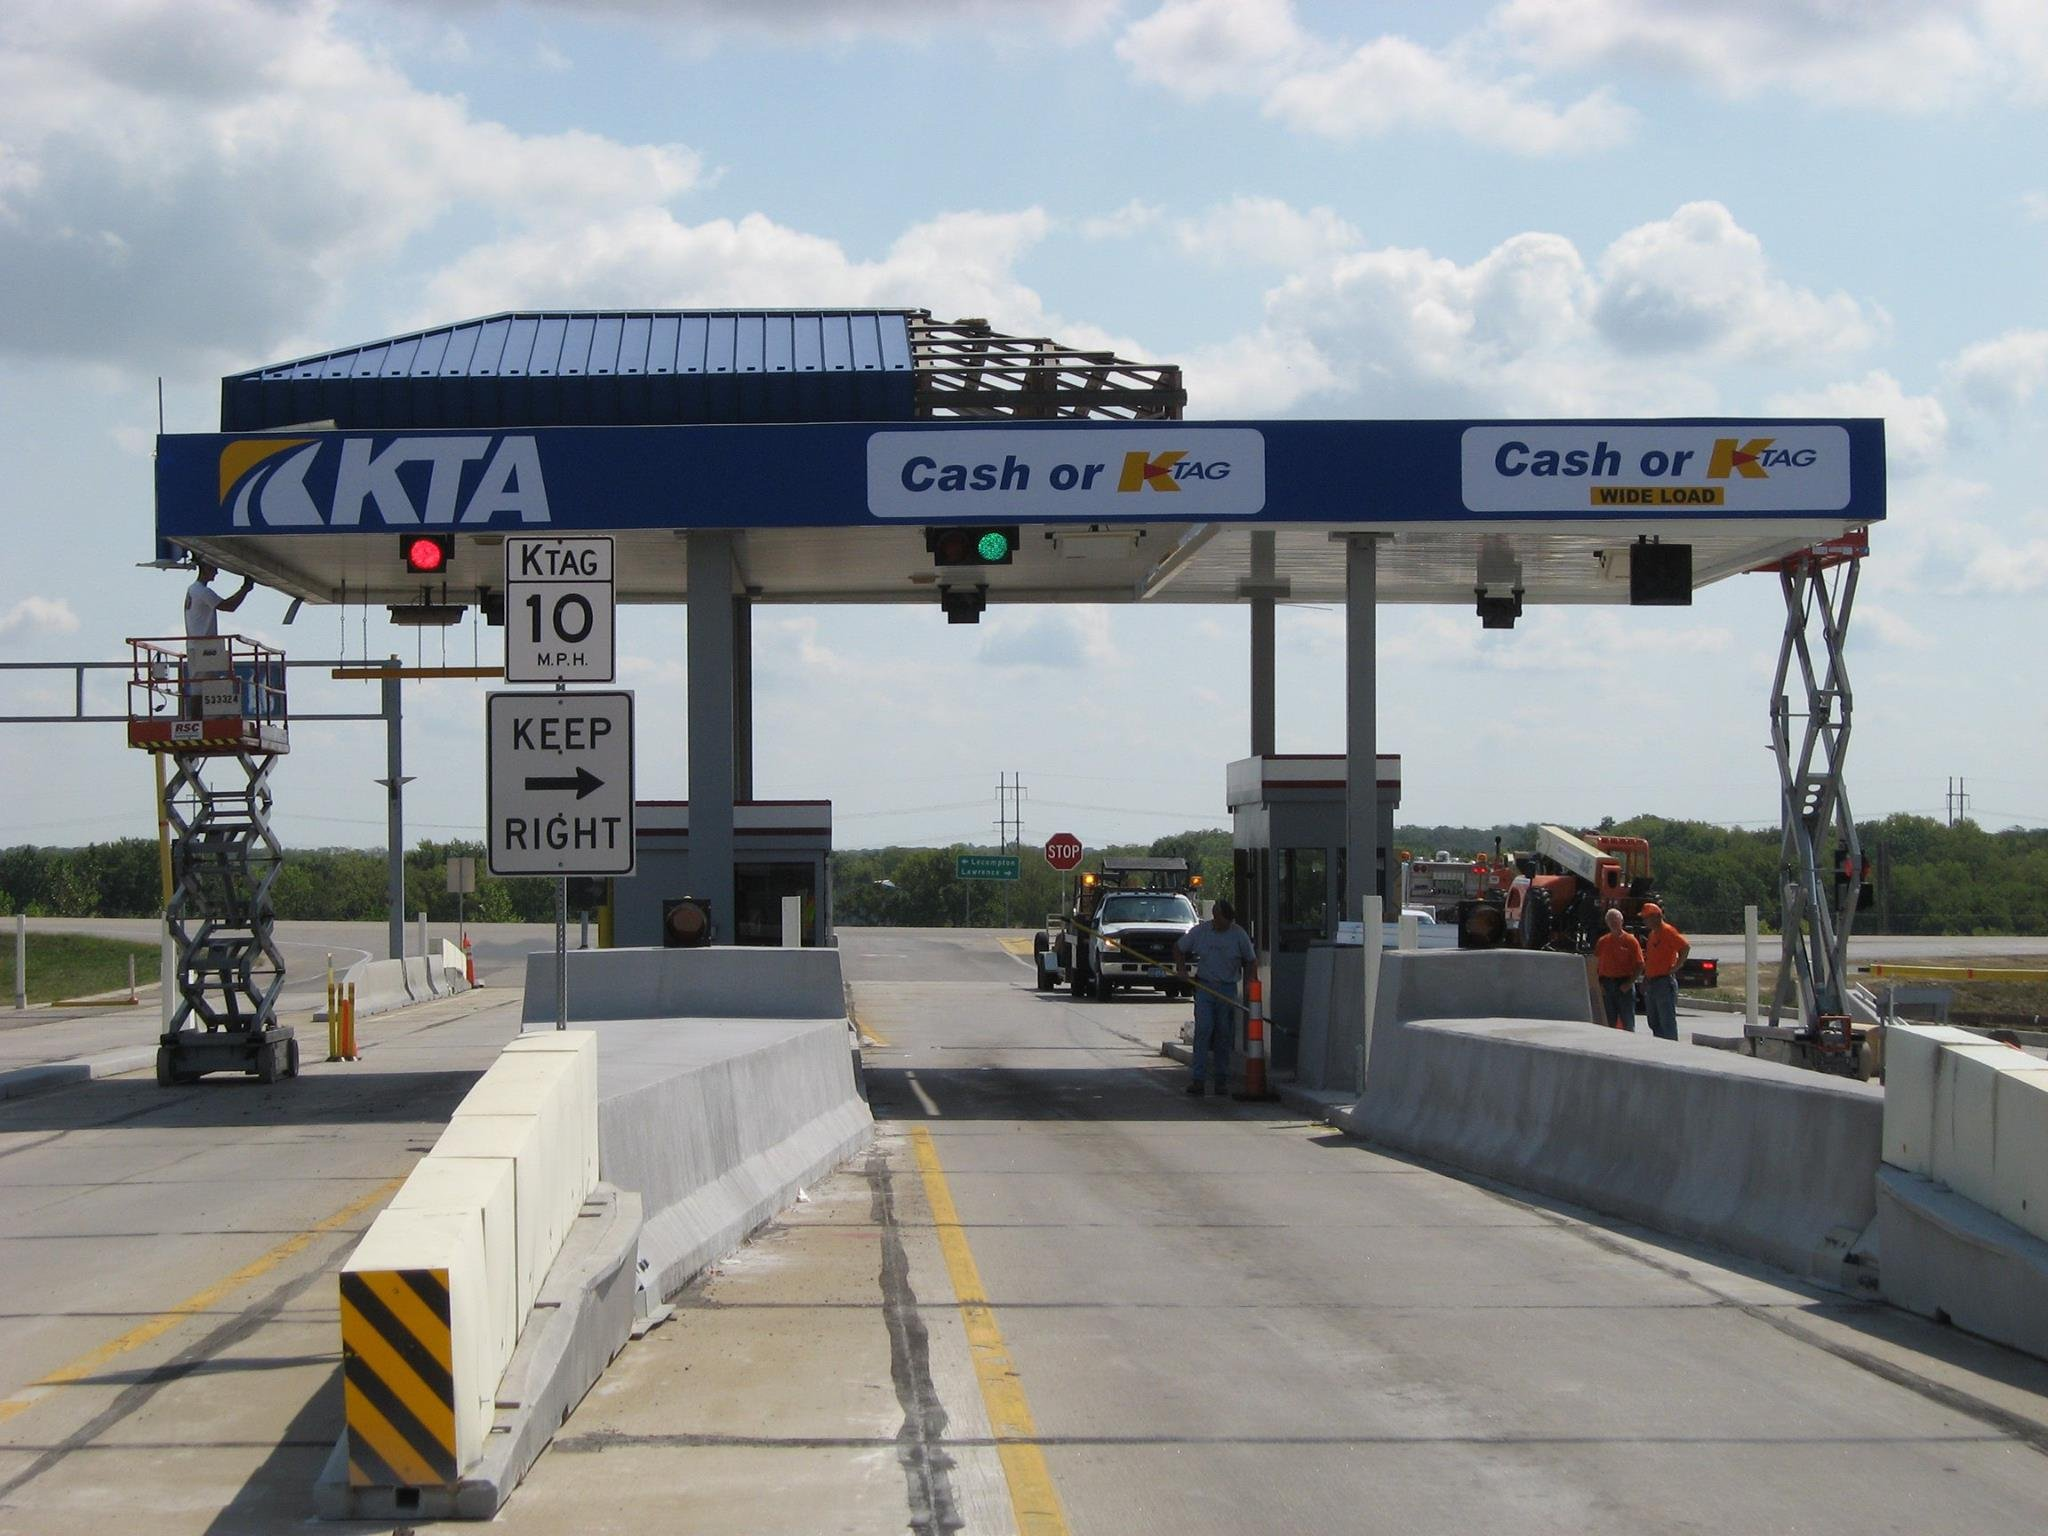 A lane that allows drivers to pass through tollbooths without slowing down has opened at the Kansas Turnpike's eastern terminal. (Kansas Turnpike Authority/Facebook)